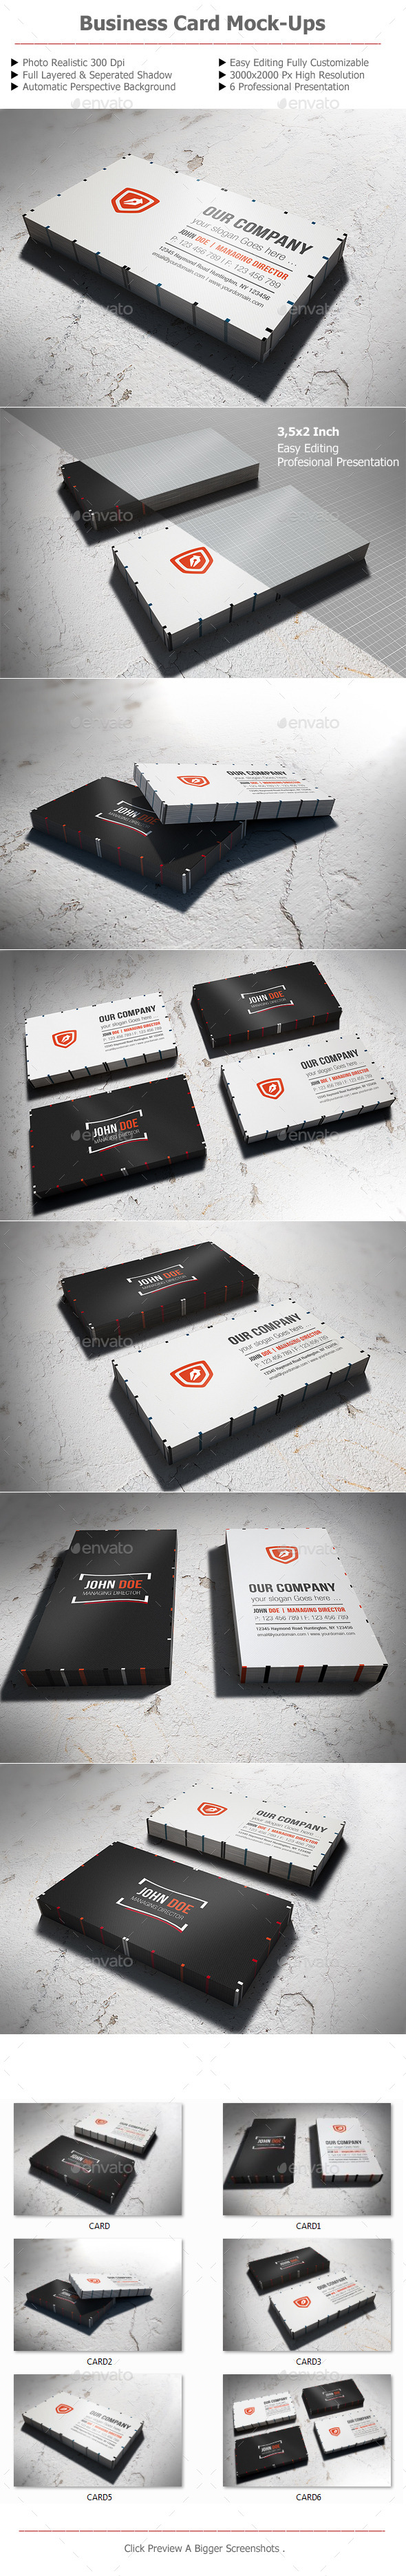 GraphicRiver Business Card Mock-Up v1 11331436